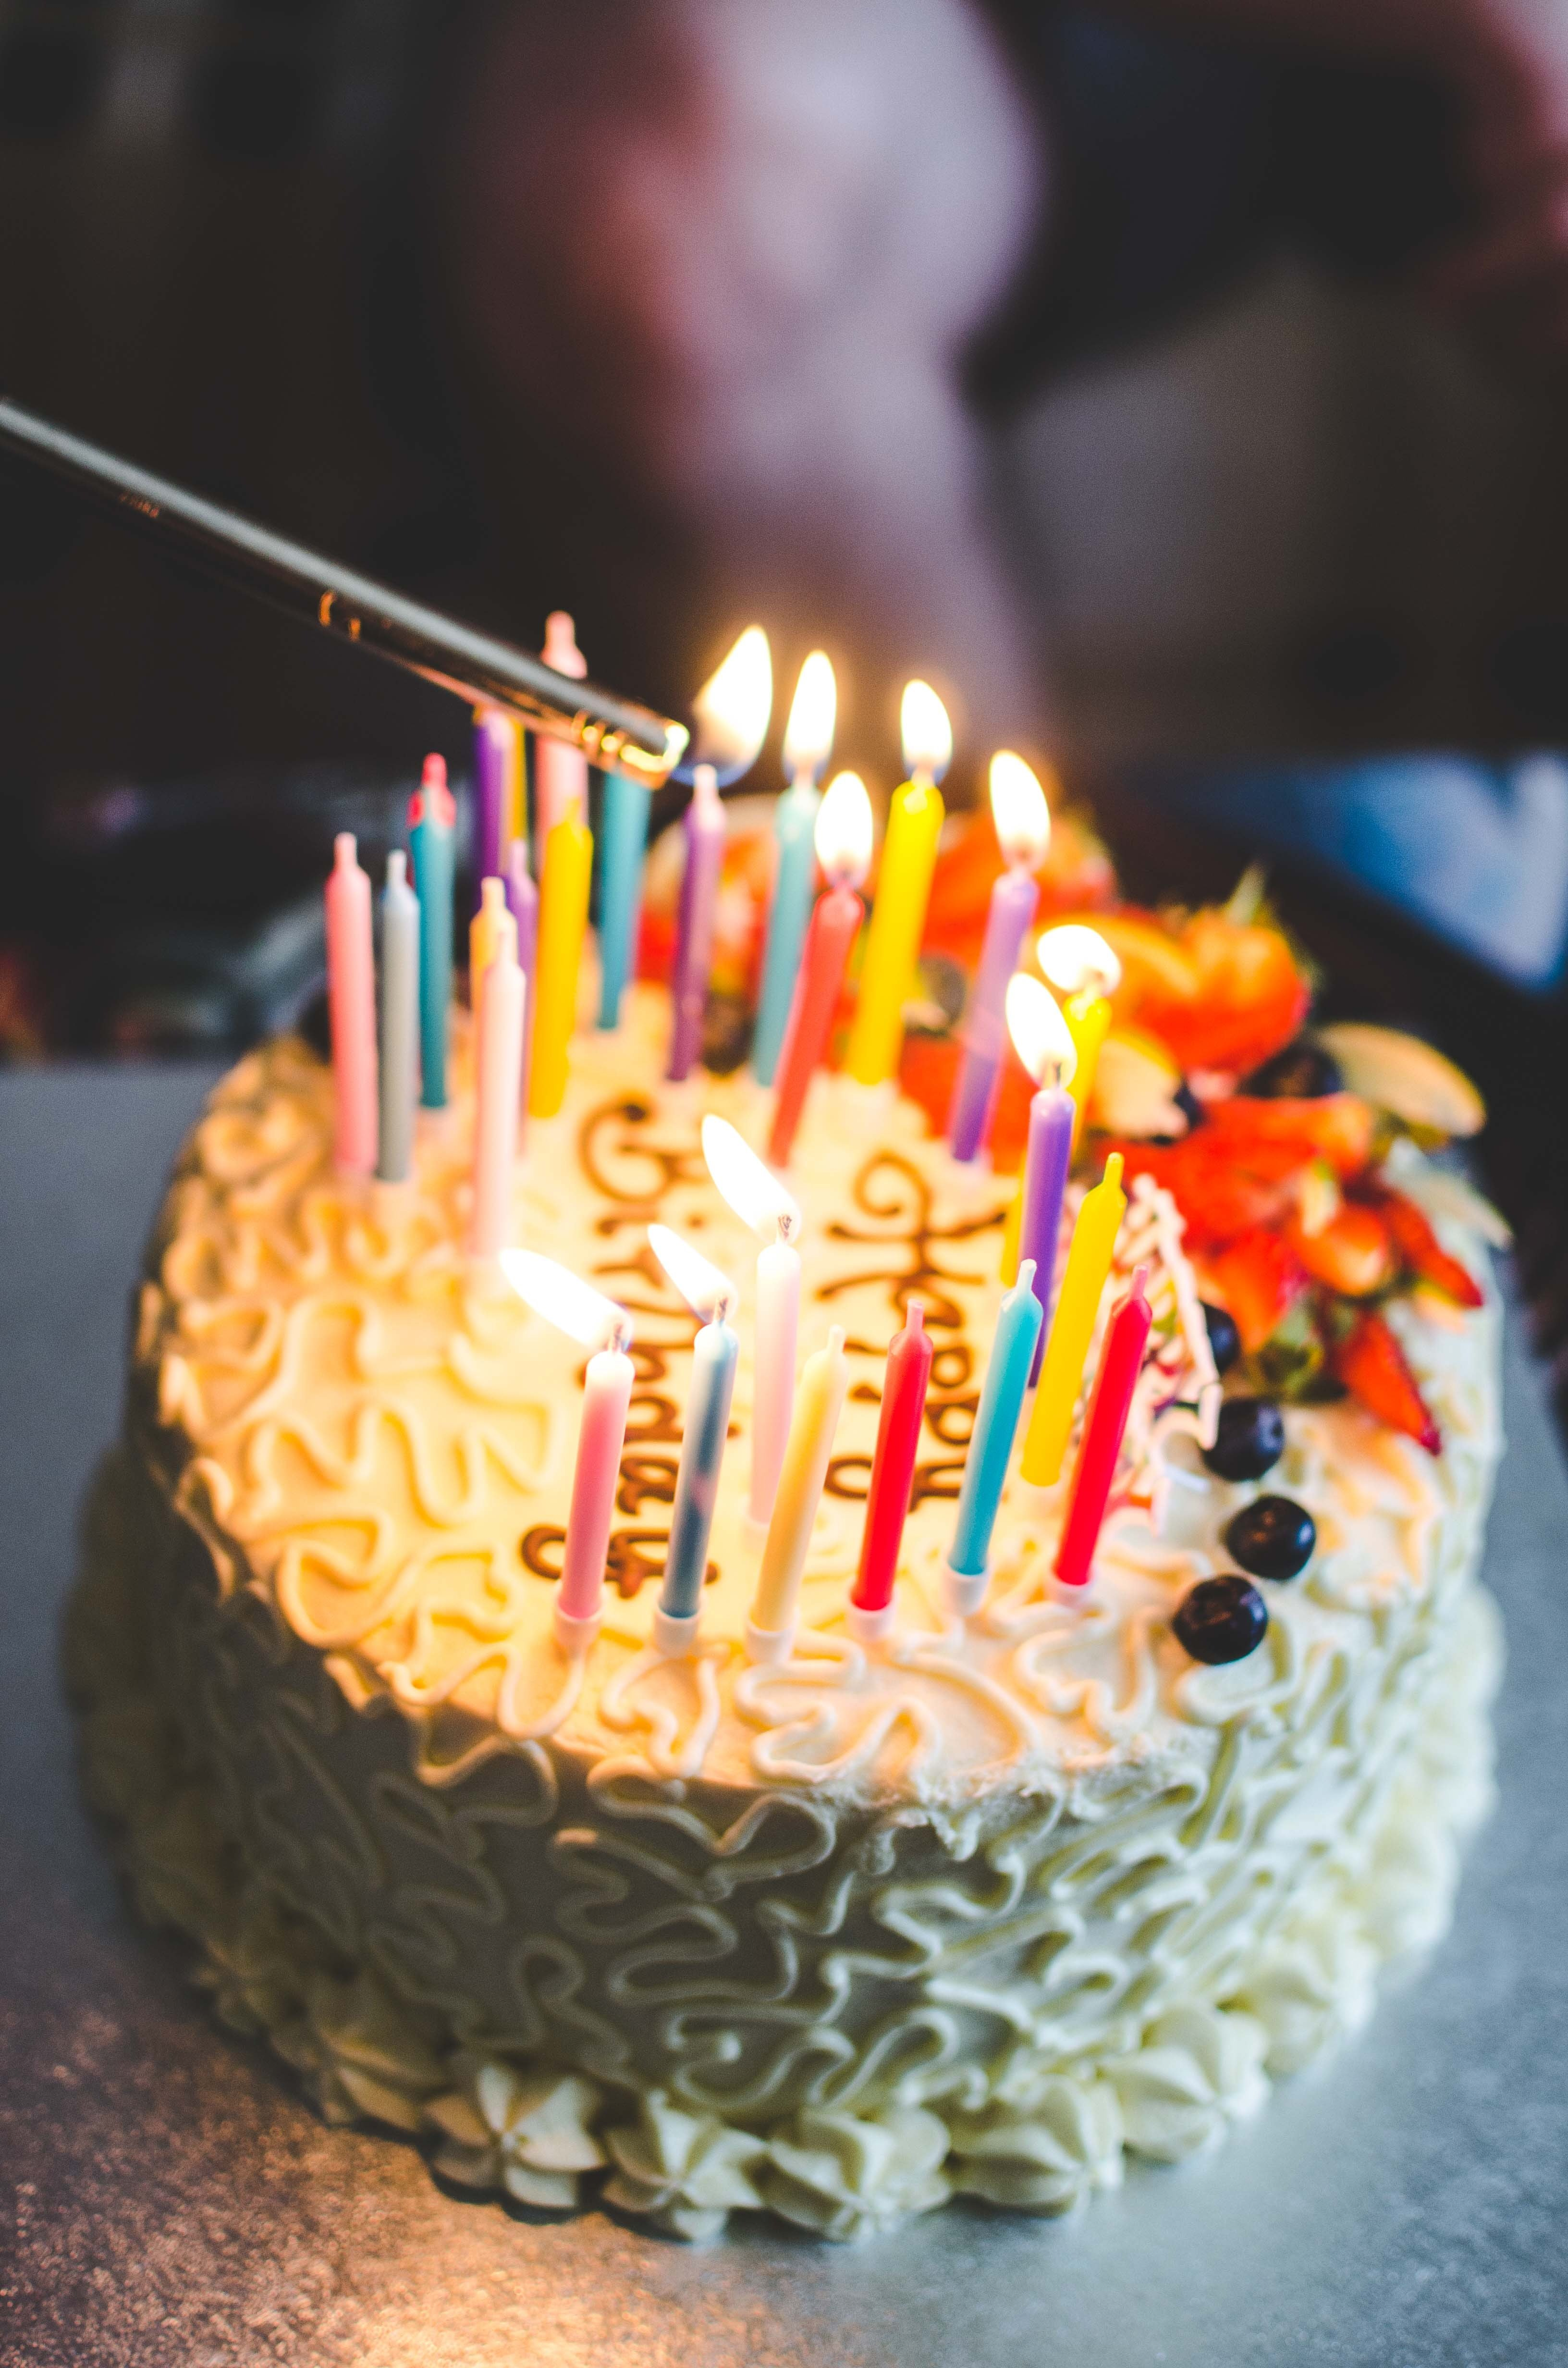 A picture of someone lighting the candles on a birthday cake. | Source: Unsplash